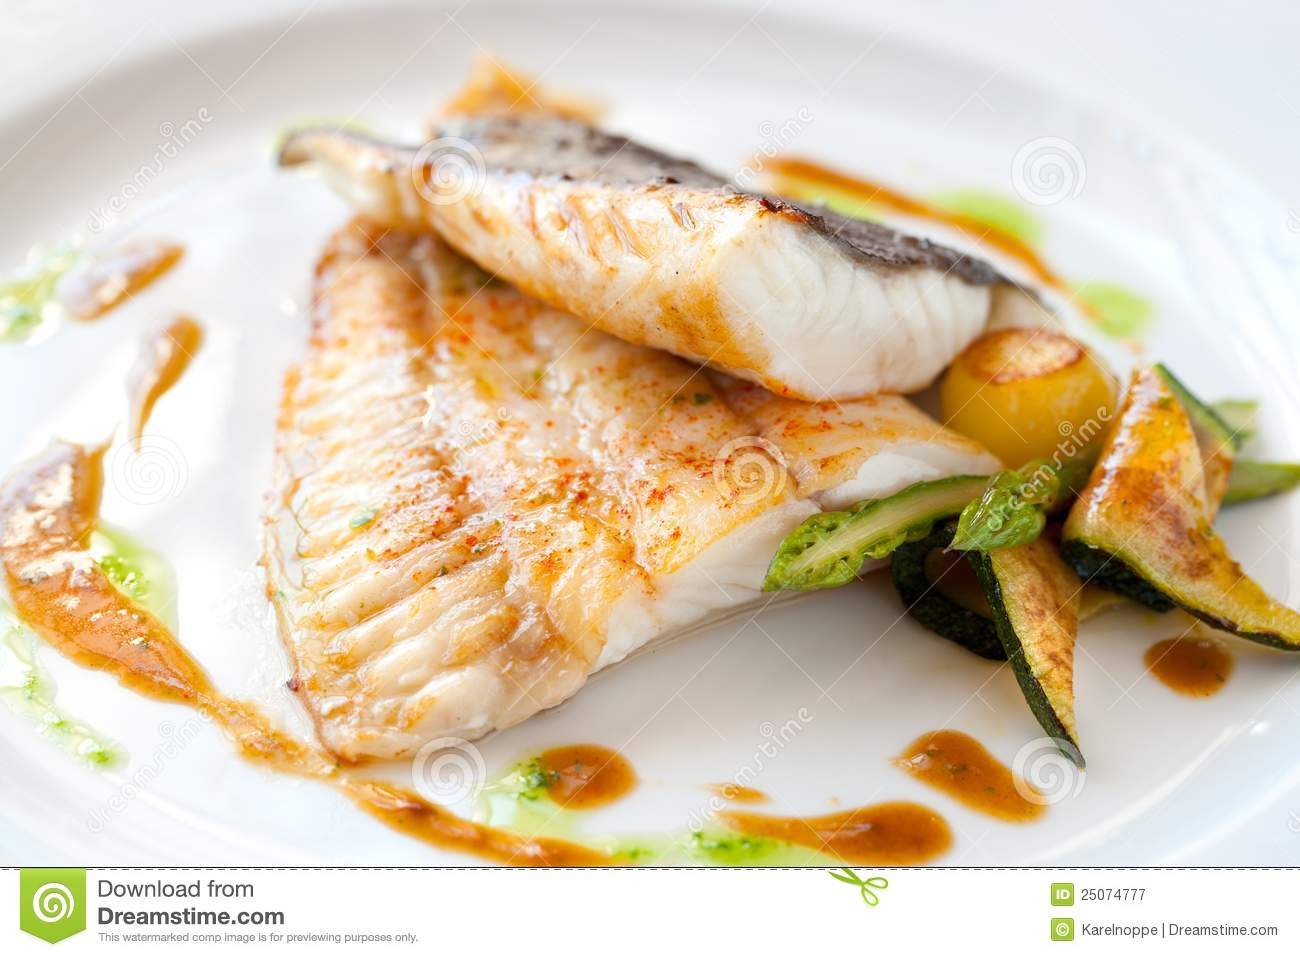 Grilled turbot fish with vegetables royalty free stock for Turbot fish price